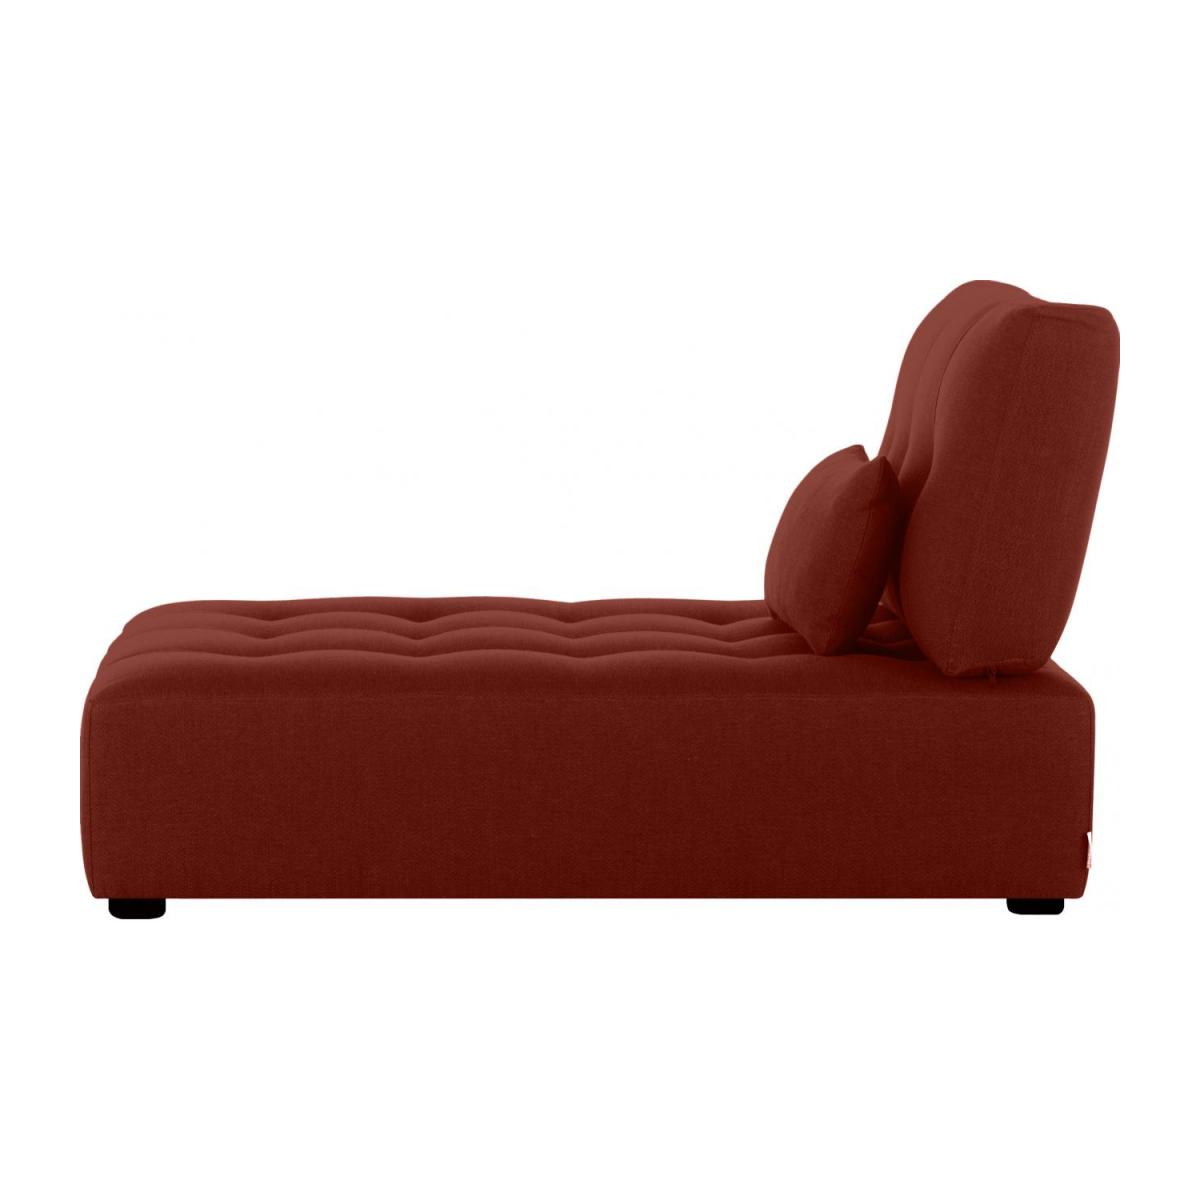 Chaiselongue-Tela-Burdeos n°3